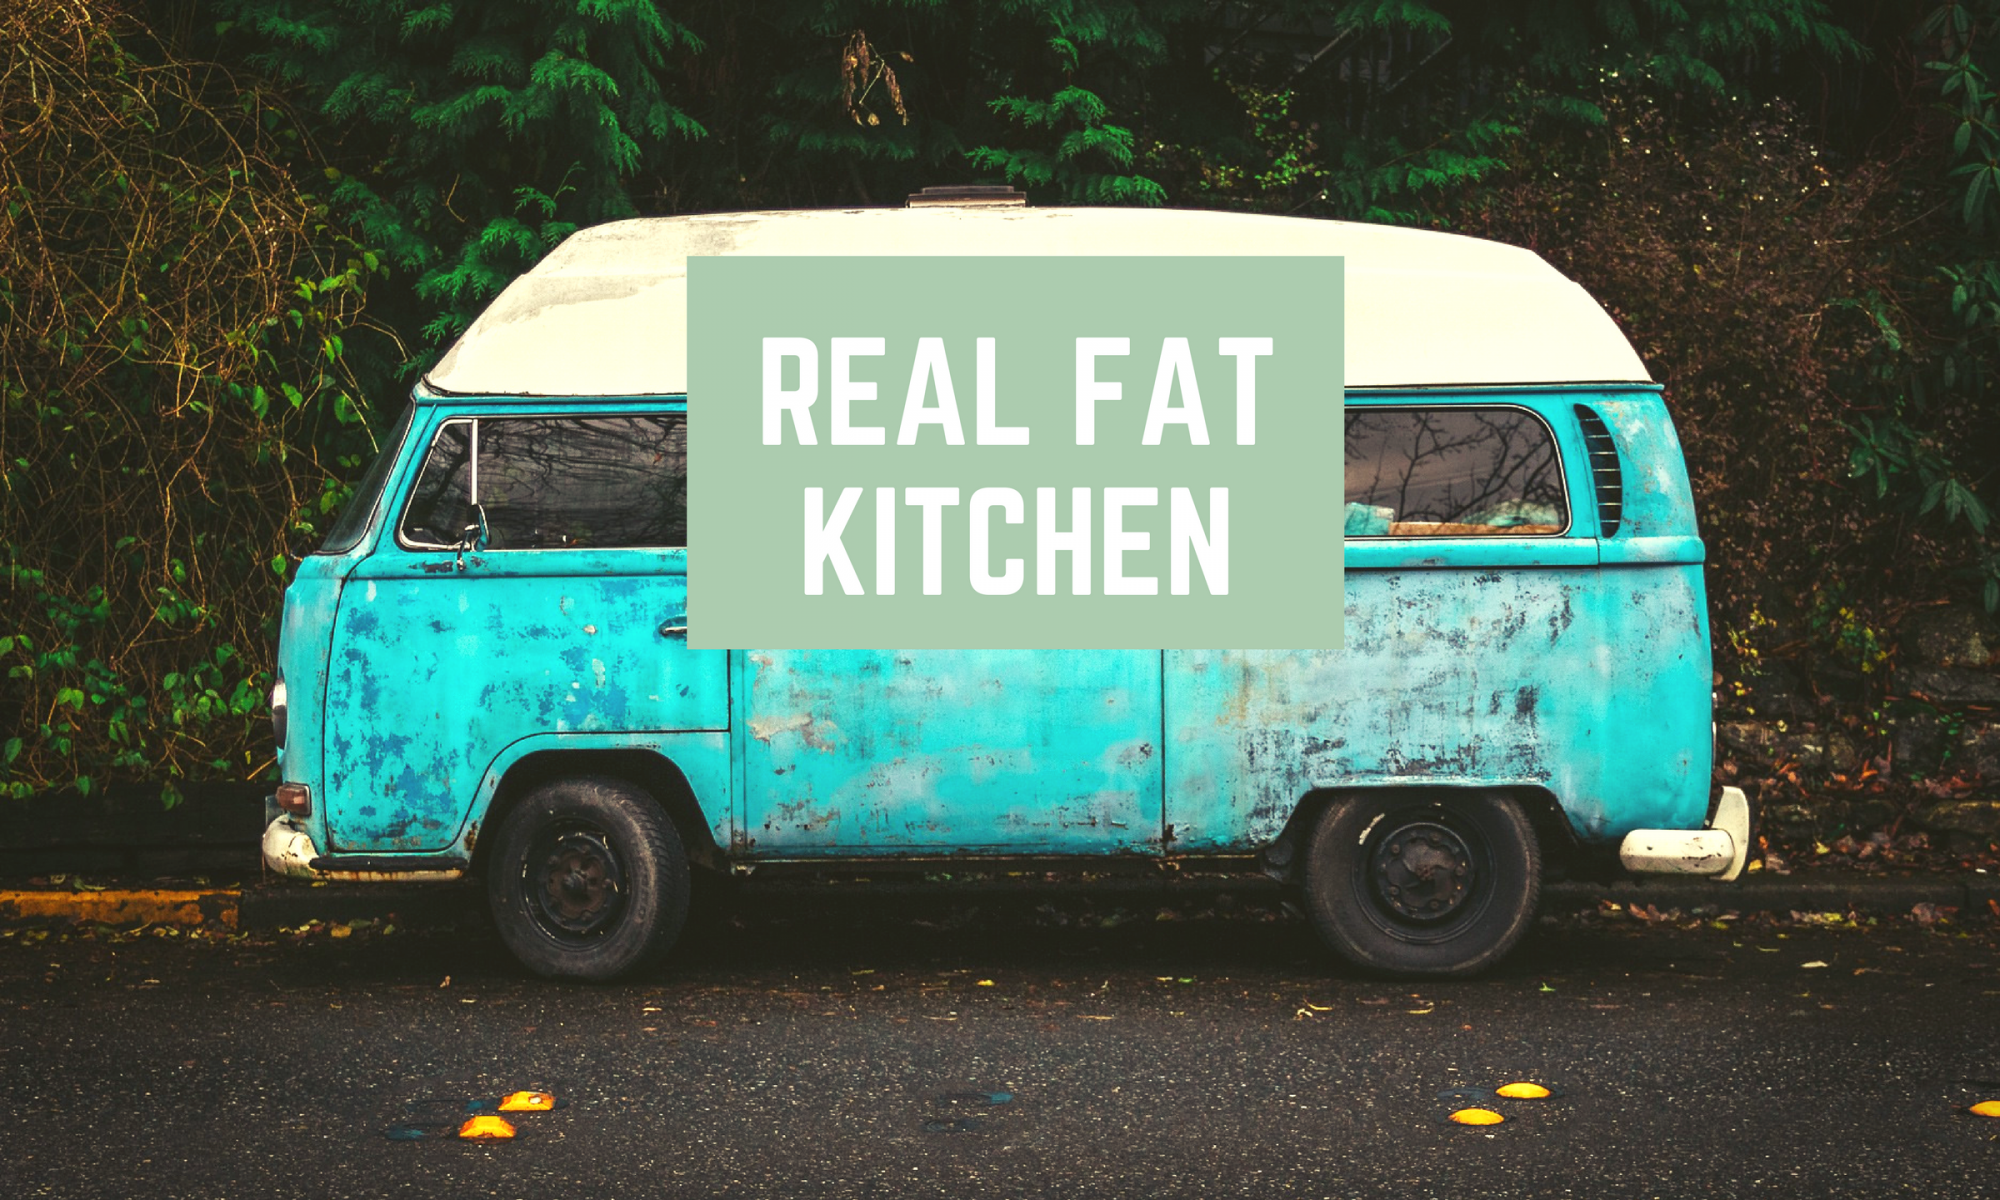 Real Fat Kitchen